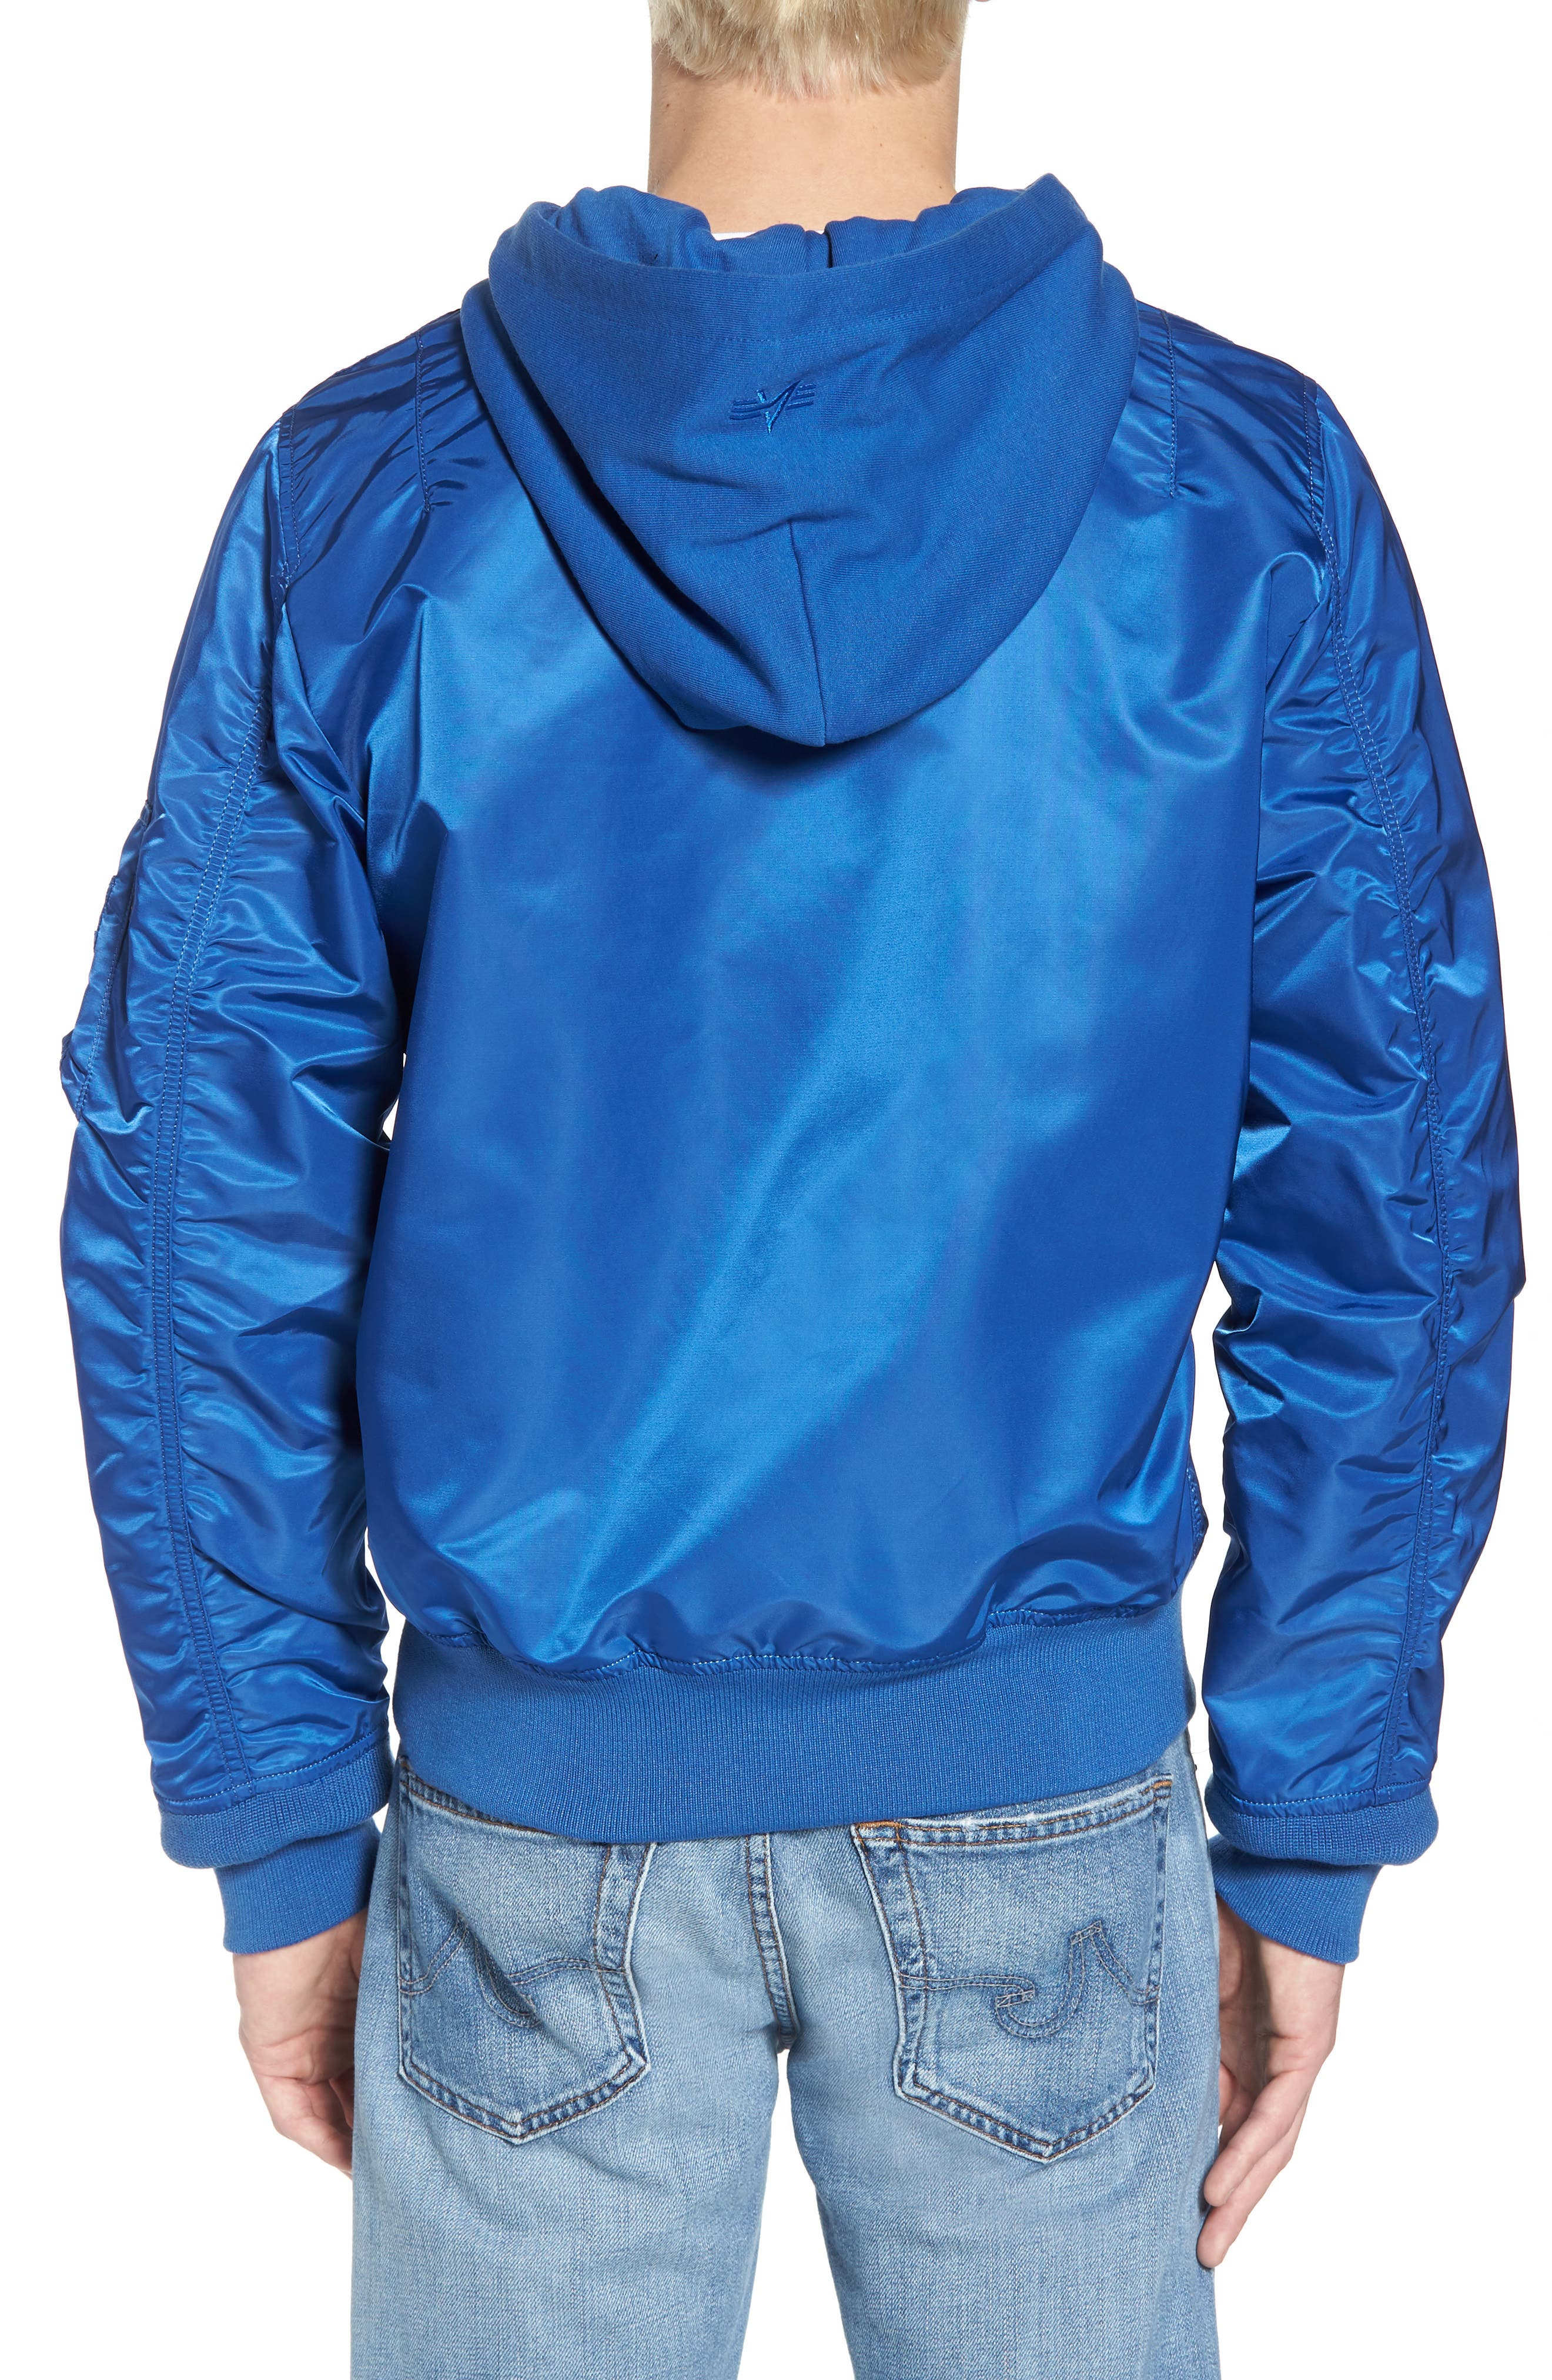 L-2B Natus Water Resistant Flight Jacket,                             Alternate thumbnail 2, color,                             Pacific Blue